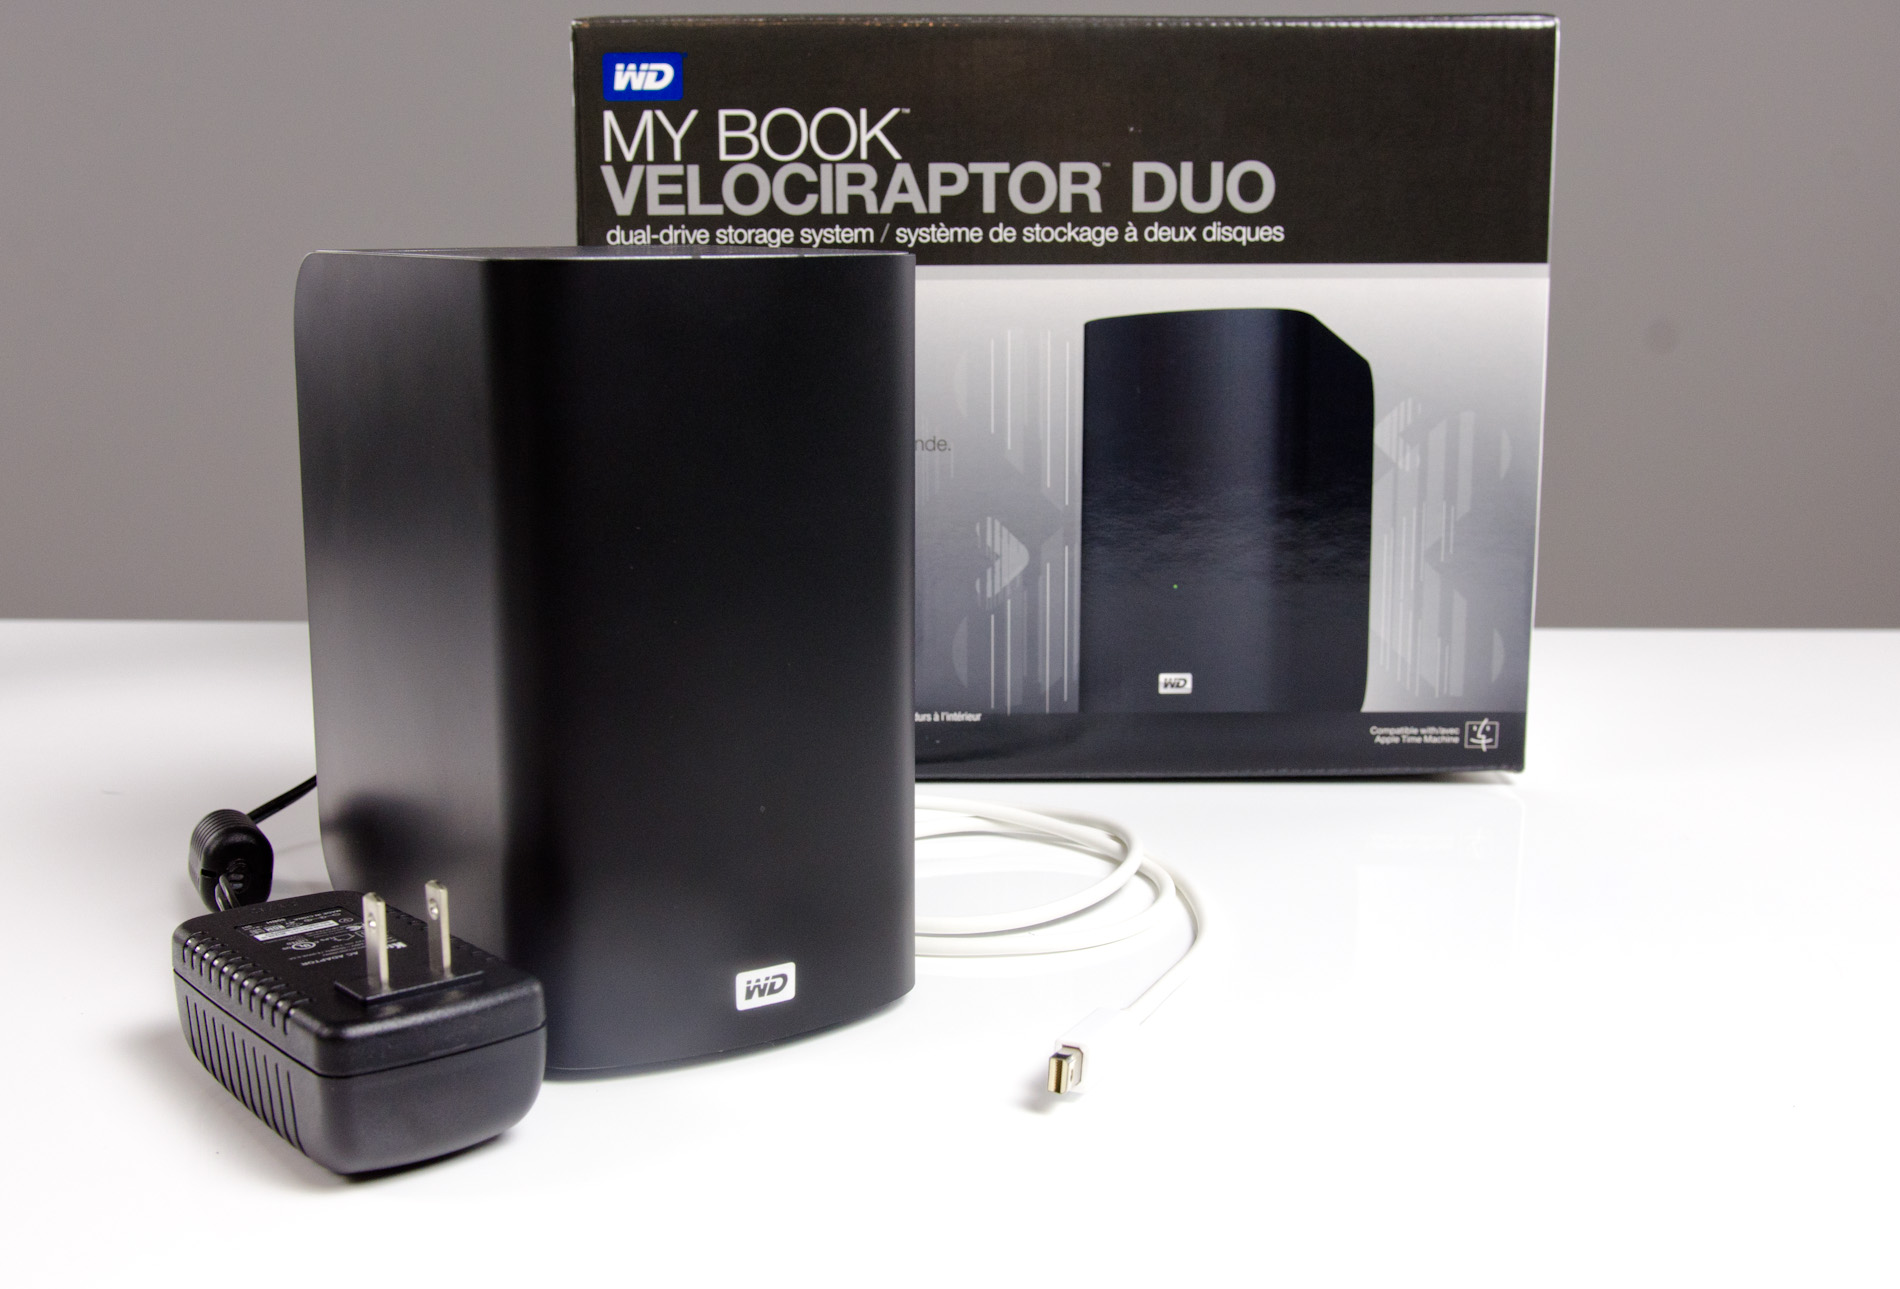 Creative Western Digital My Book Velociraptor Duo Review My Book Duo 16tb My Book Duo Review dpreview My Book Duo